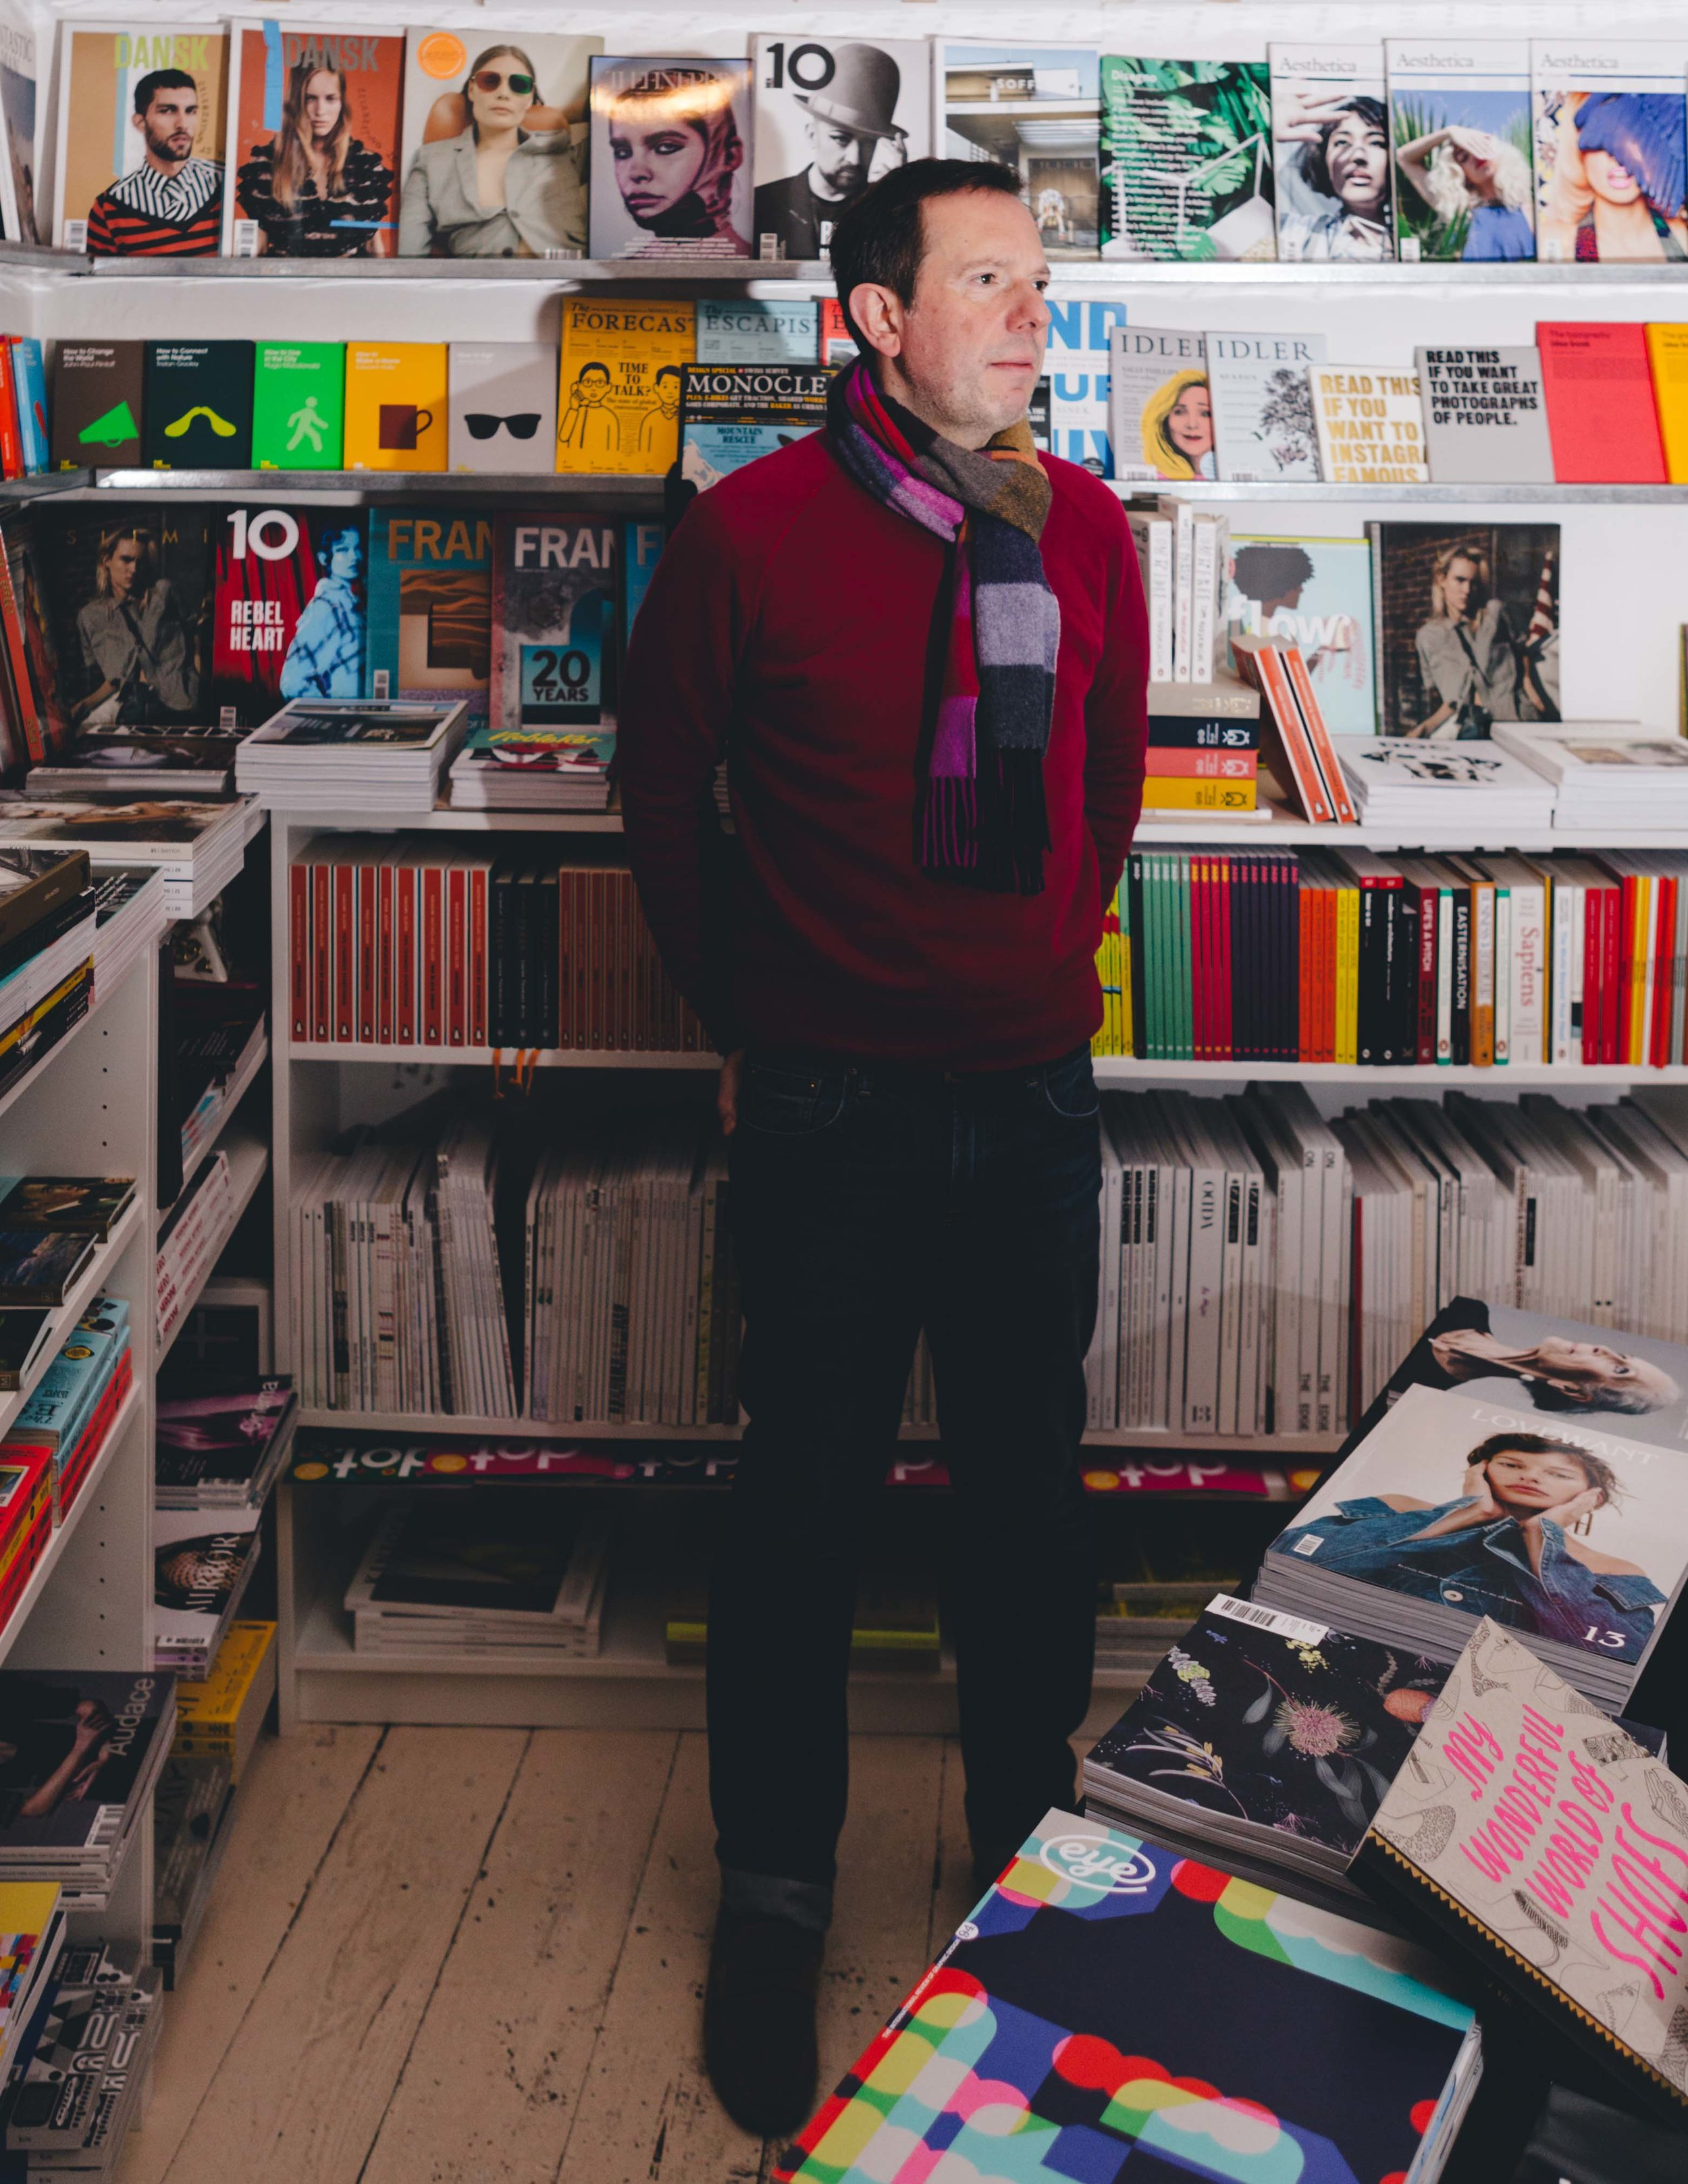 portrait image of a man standing proud looking away from the camera, behind shelves filled with books on the walls down to the floor and books in the forefront